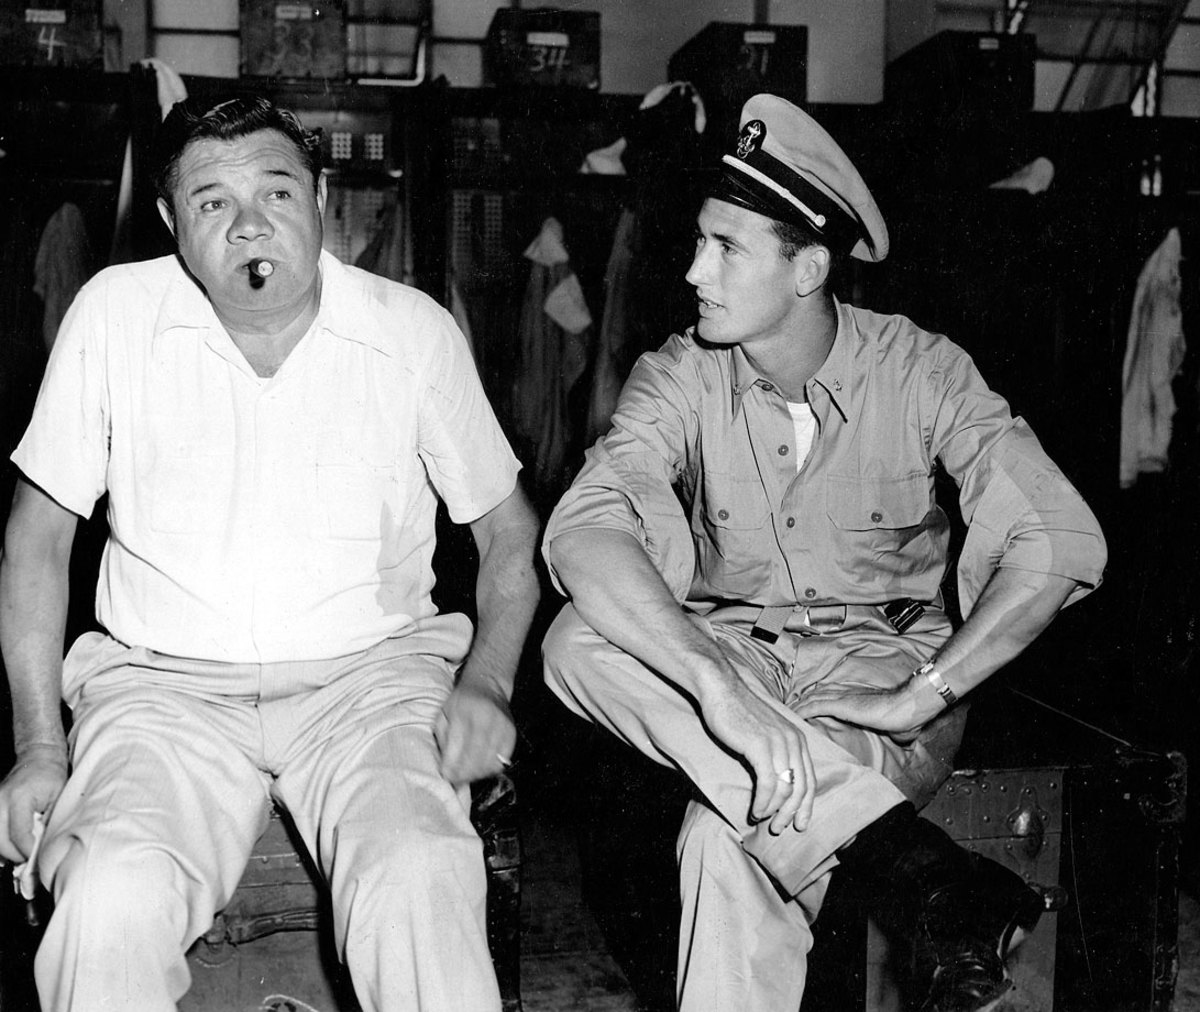 Babe Ruth and Ted Williams swap baseball stories